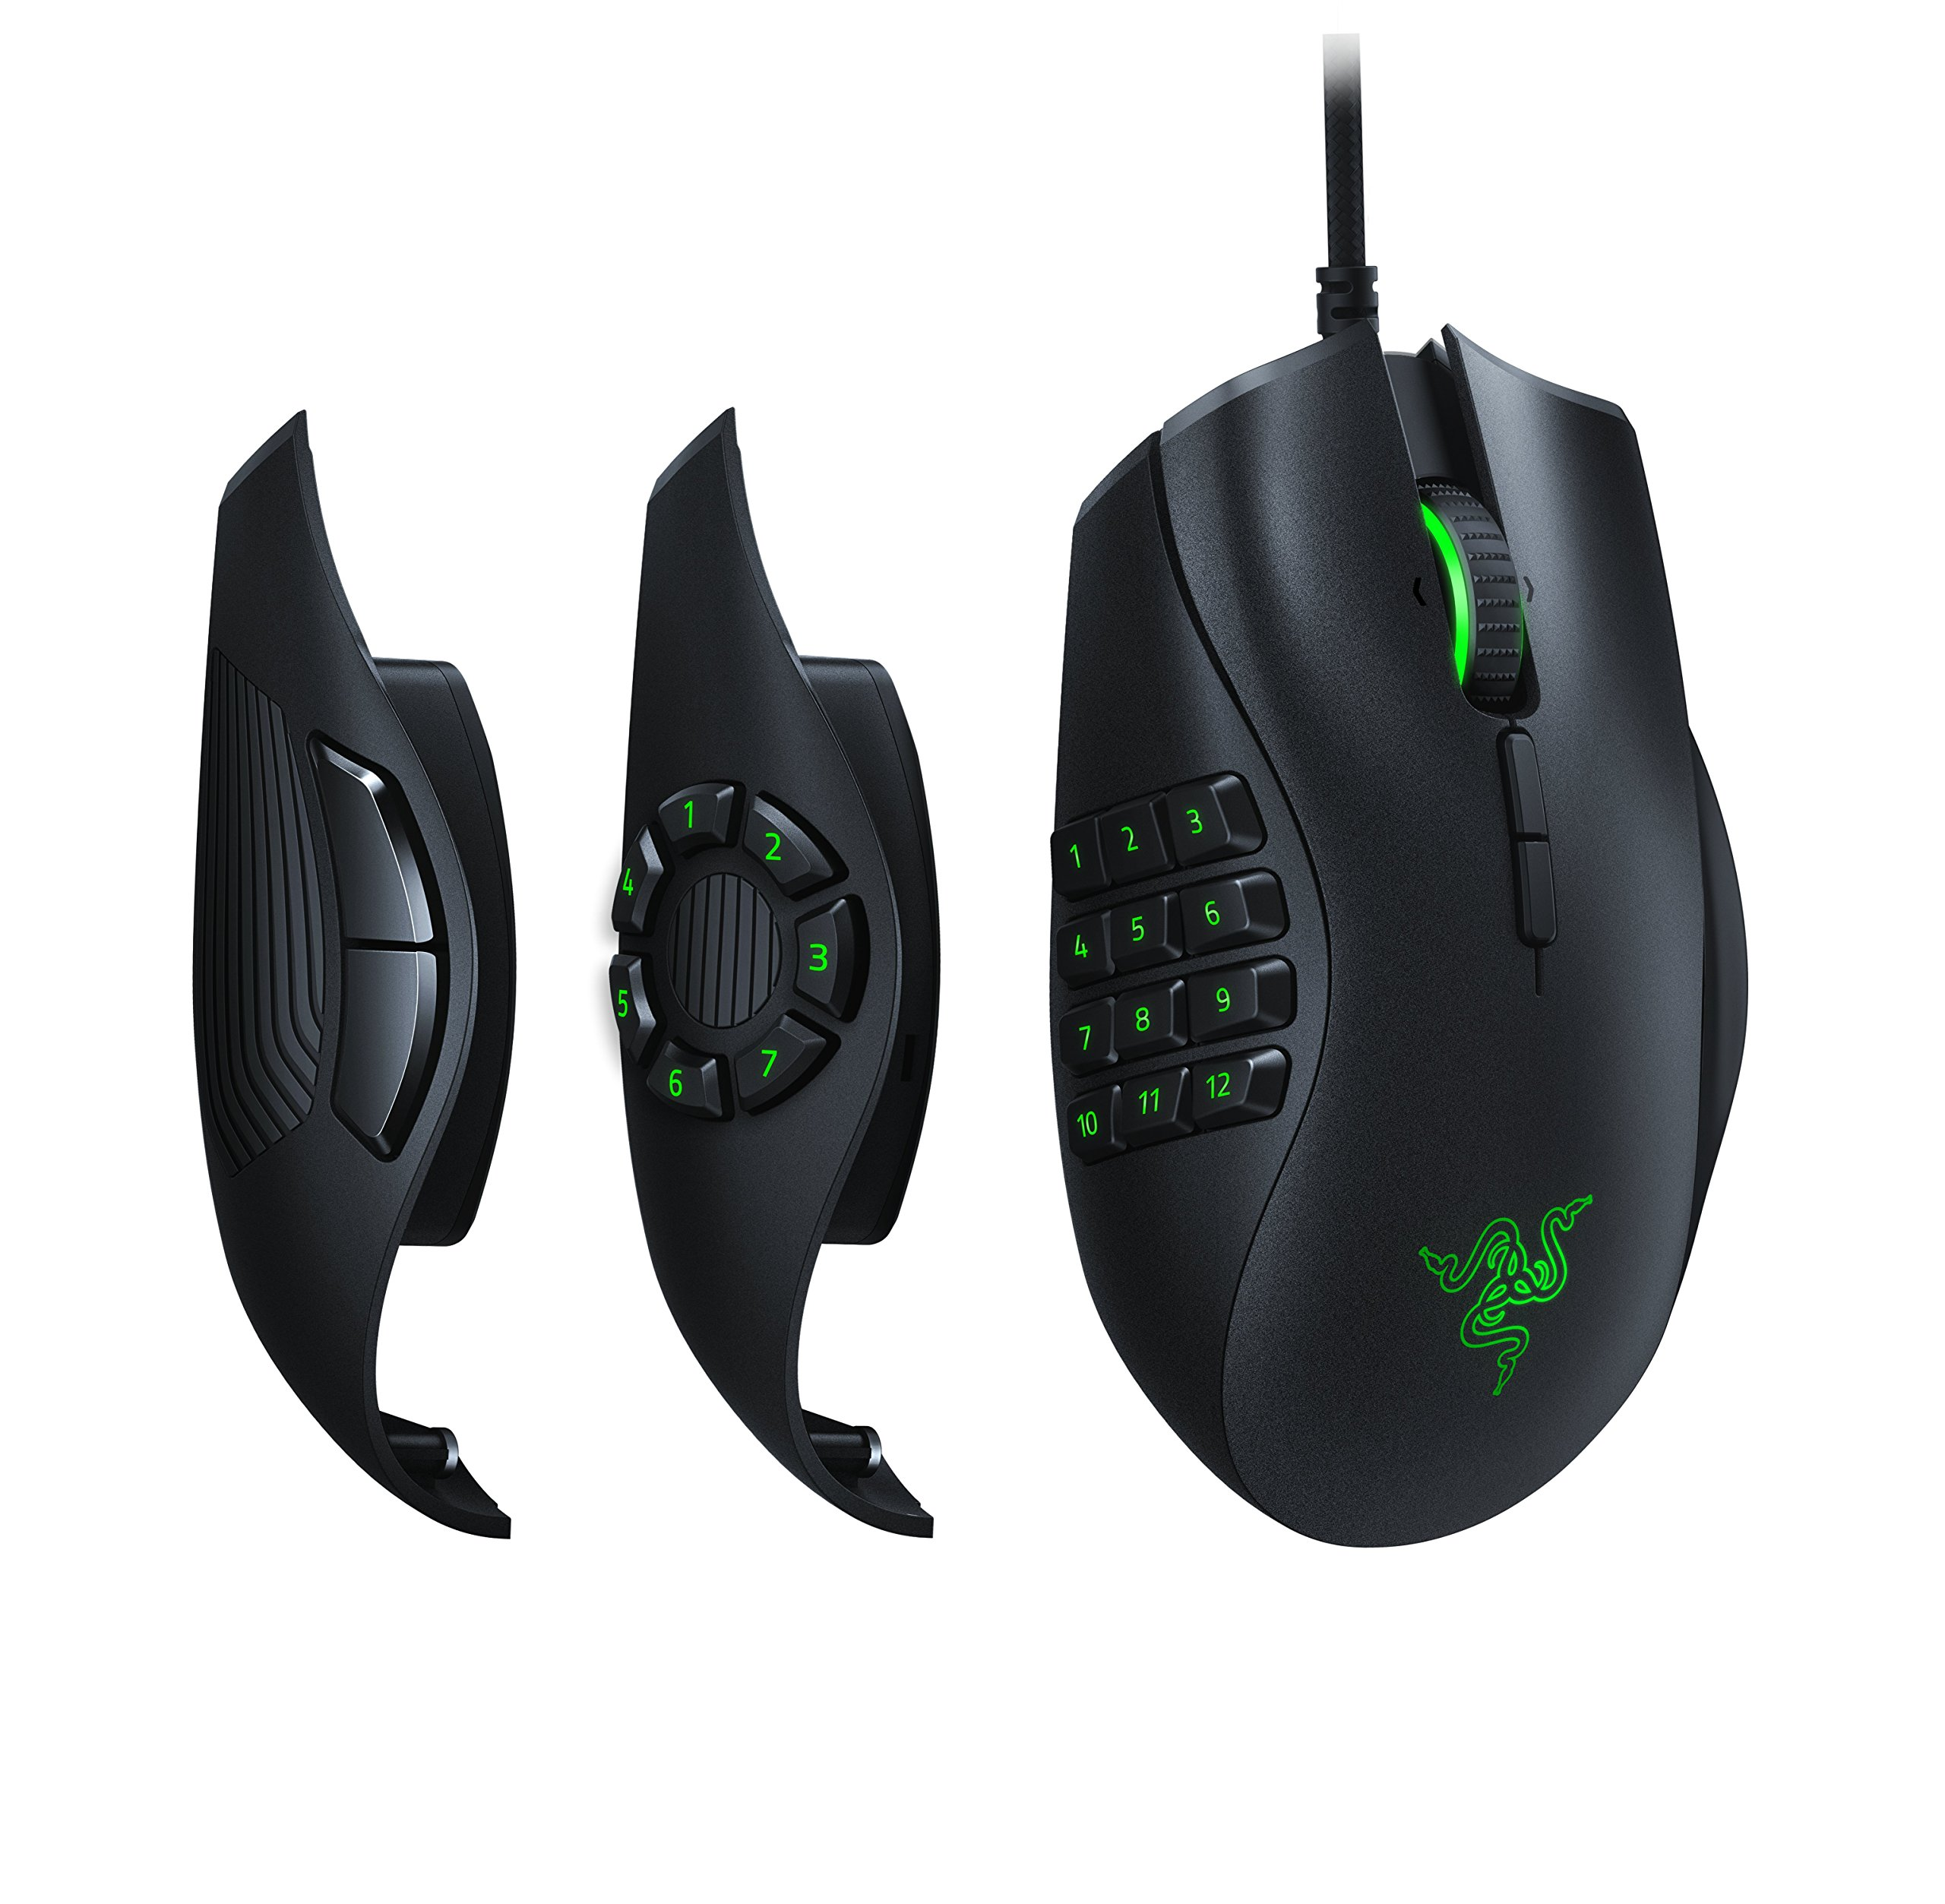 Razer Naga Trinity Gaming Mouse: 16,000 DPI Optical Sensor - Chroma RGB Lighting - Interchangeable Side Plate w/ 2, 7, 12 Button Configurations - Mechanical Switches by Razer